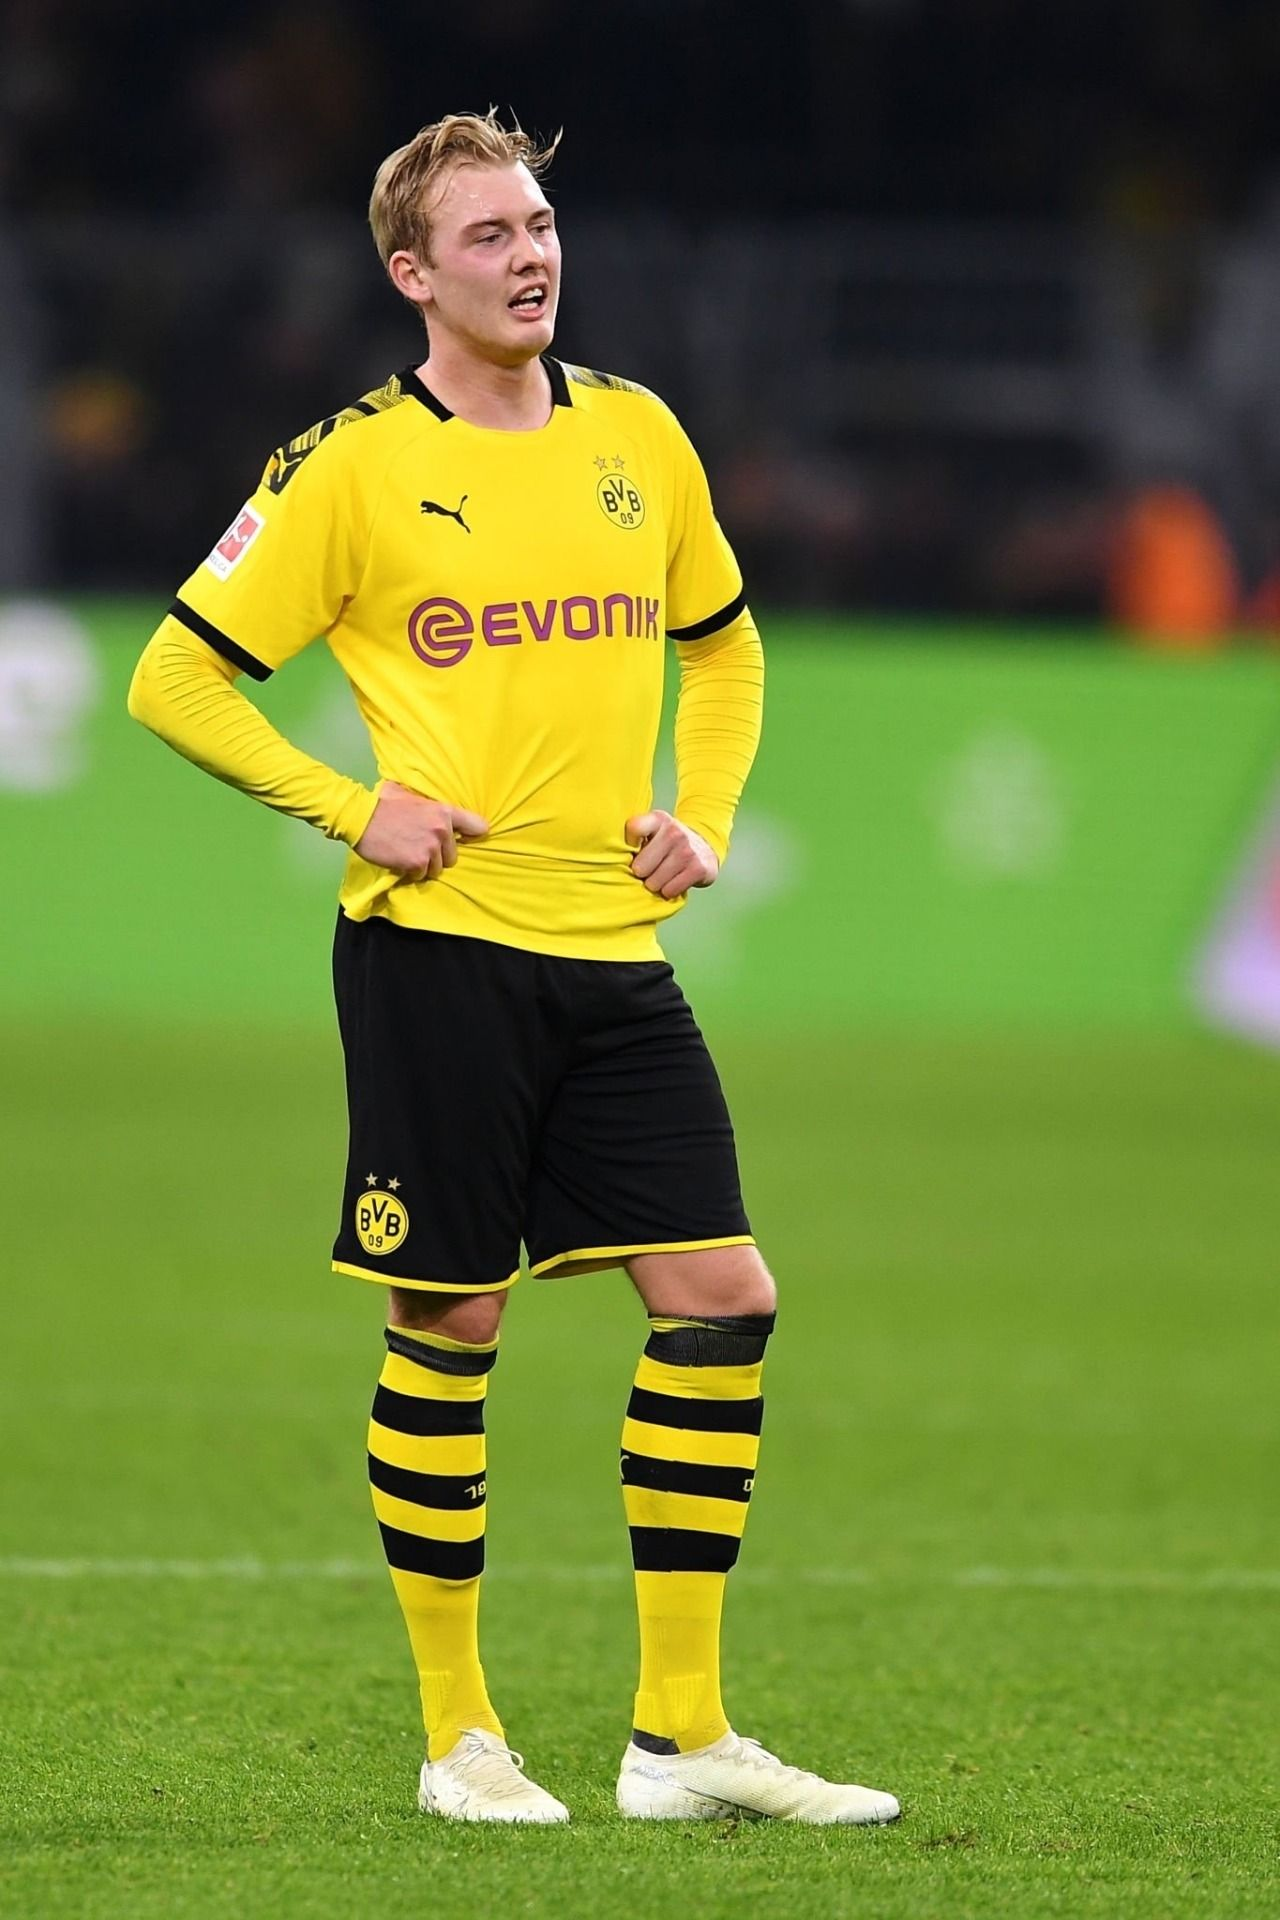 Pin By John Turle On The Beautiful Game In 2021 Julian Brandt Best Player Football